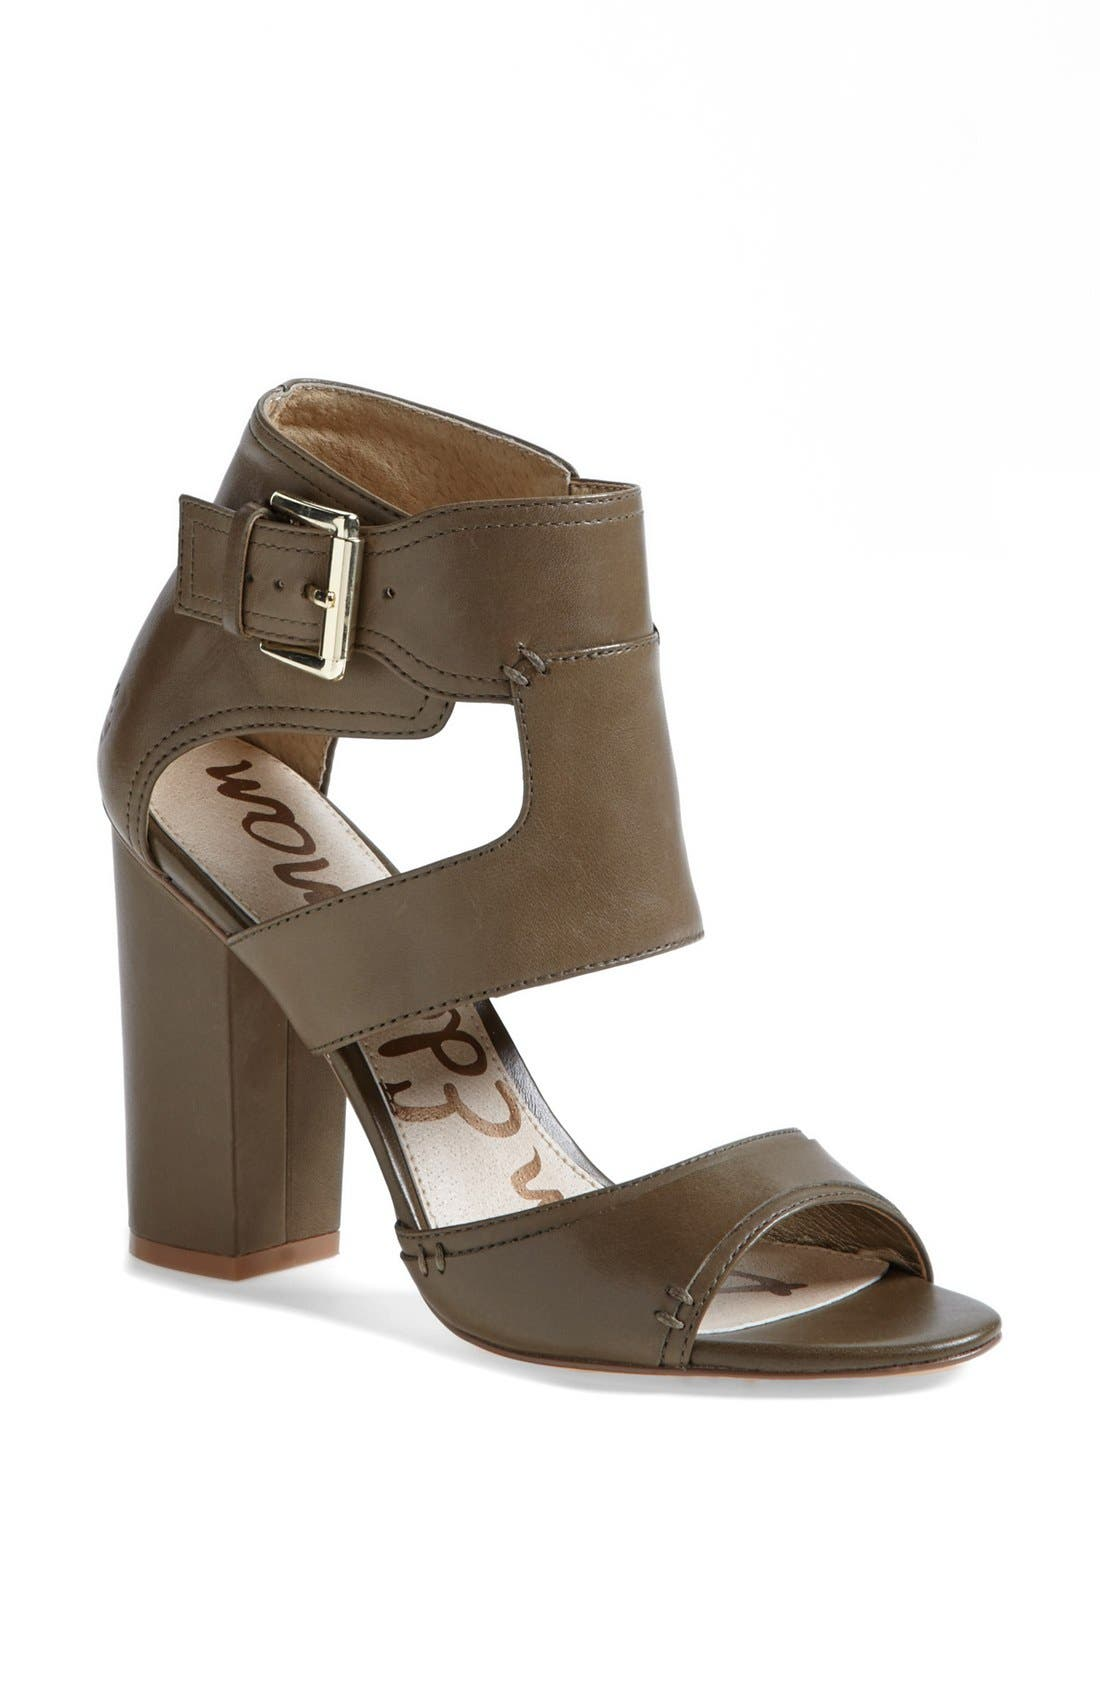 Alternate Image 1 Selected - Sam Edelman 'Yana' Sandal